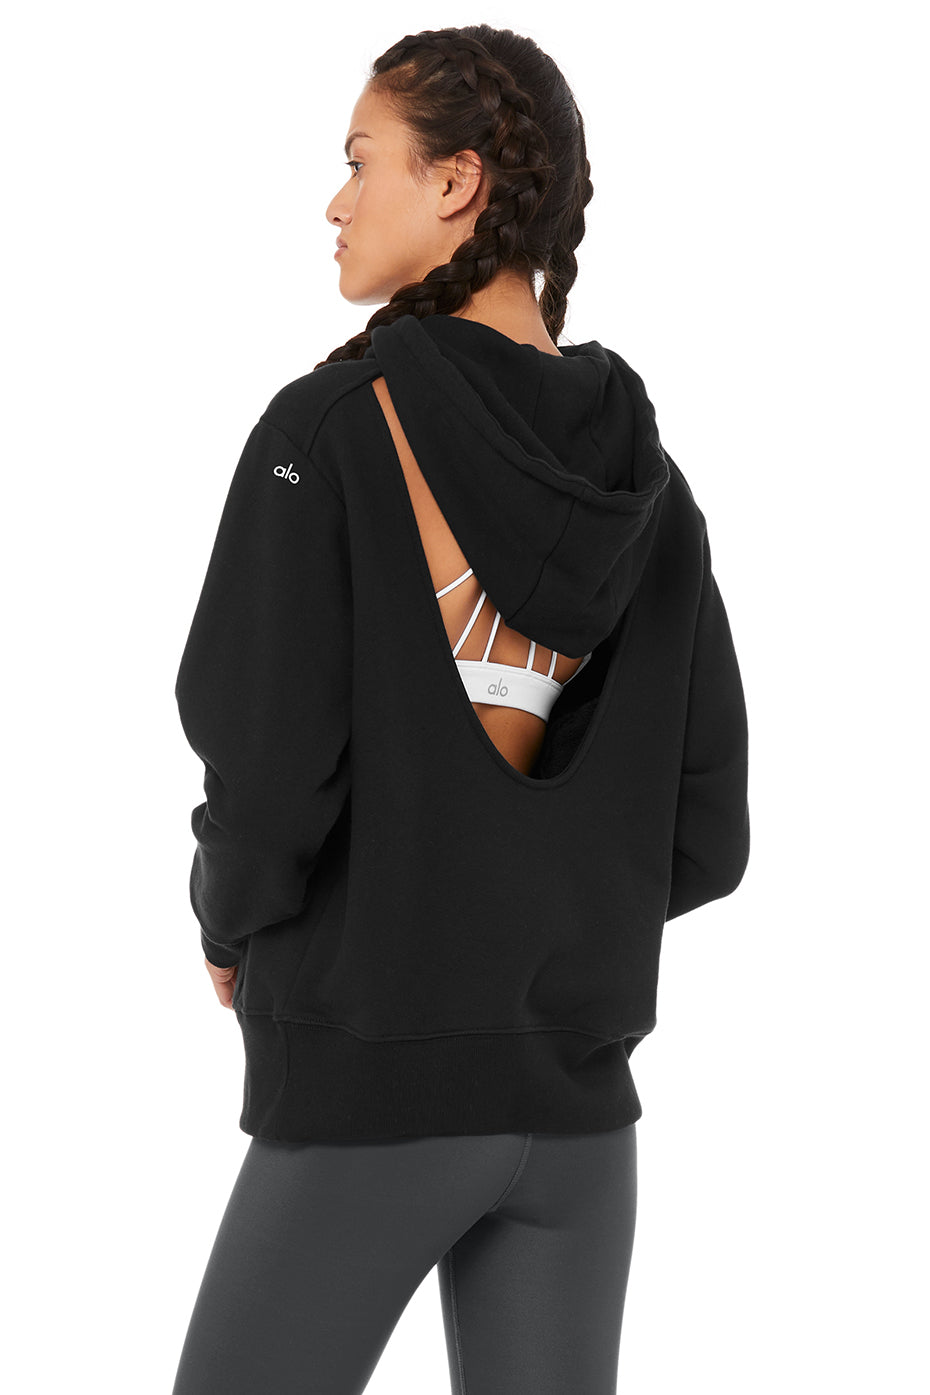 Limited-Edition Exclusive Sanctuary Hoodie